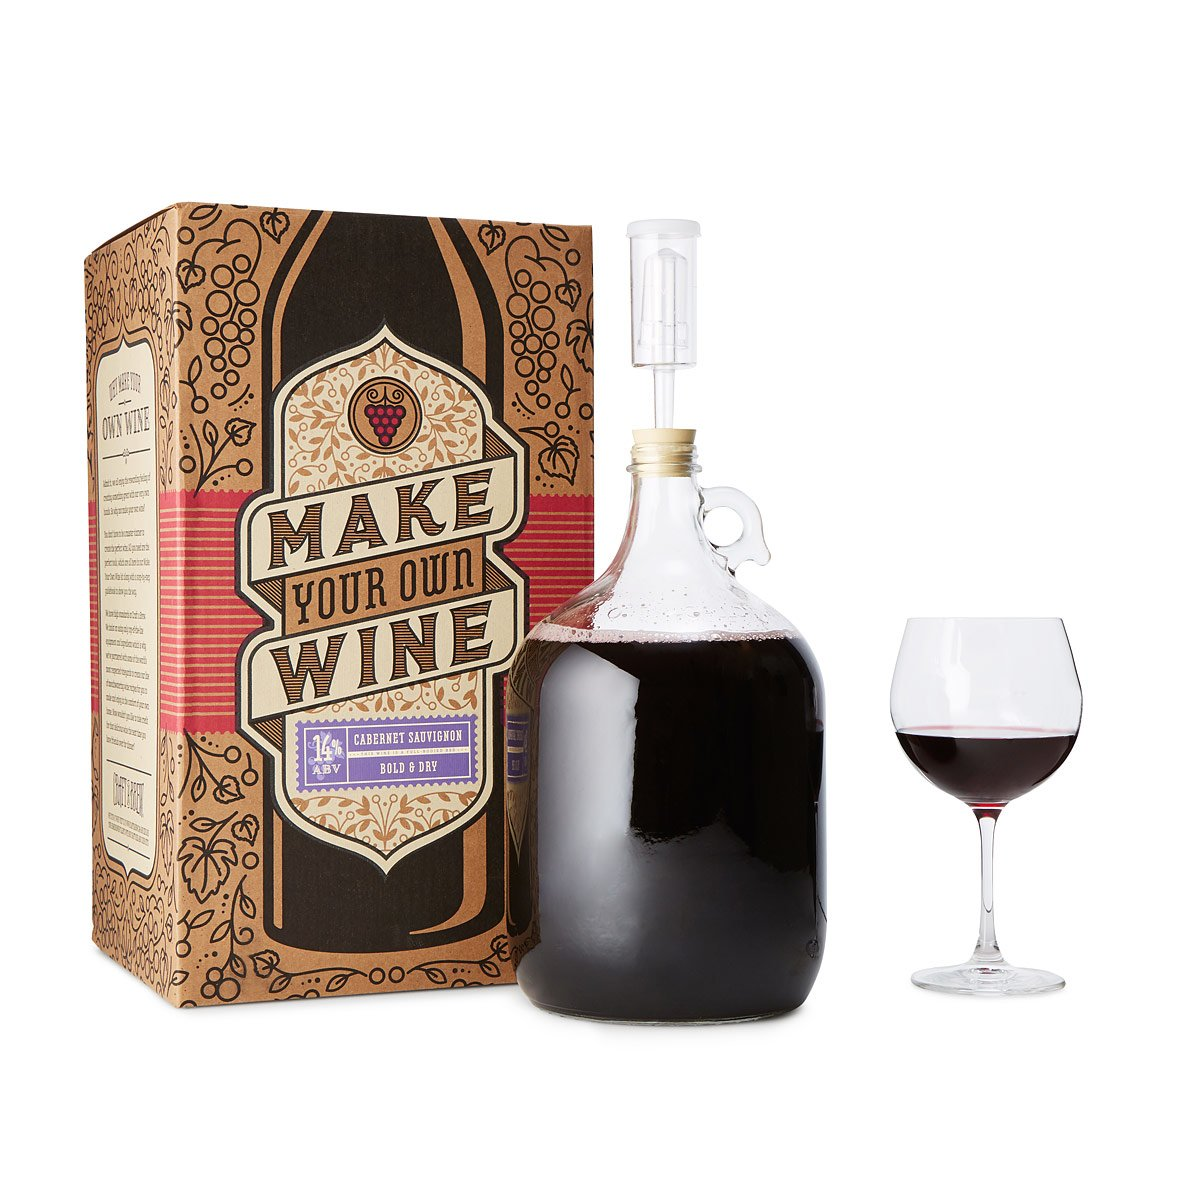 Diy kits craft projects uncommongoods cabernet sauvignon wine making kit solutioingenieria Image collections